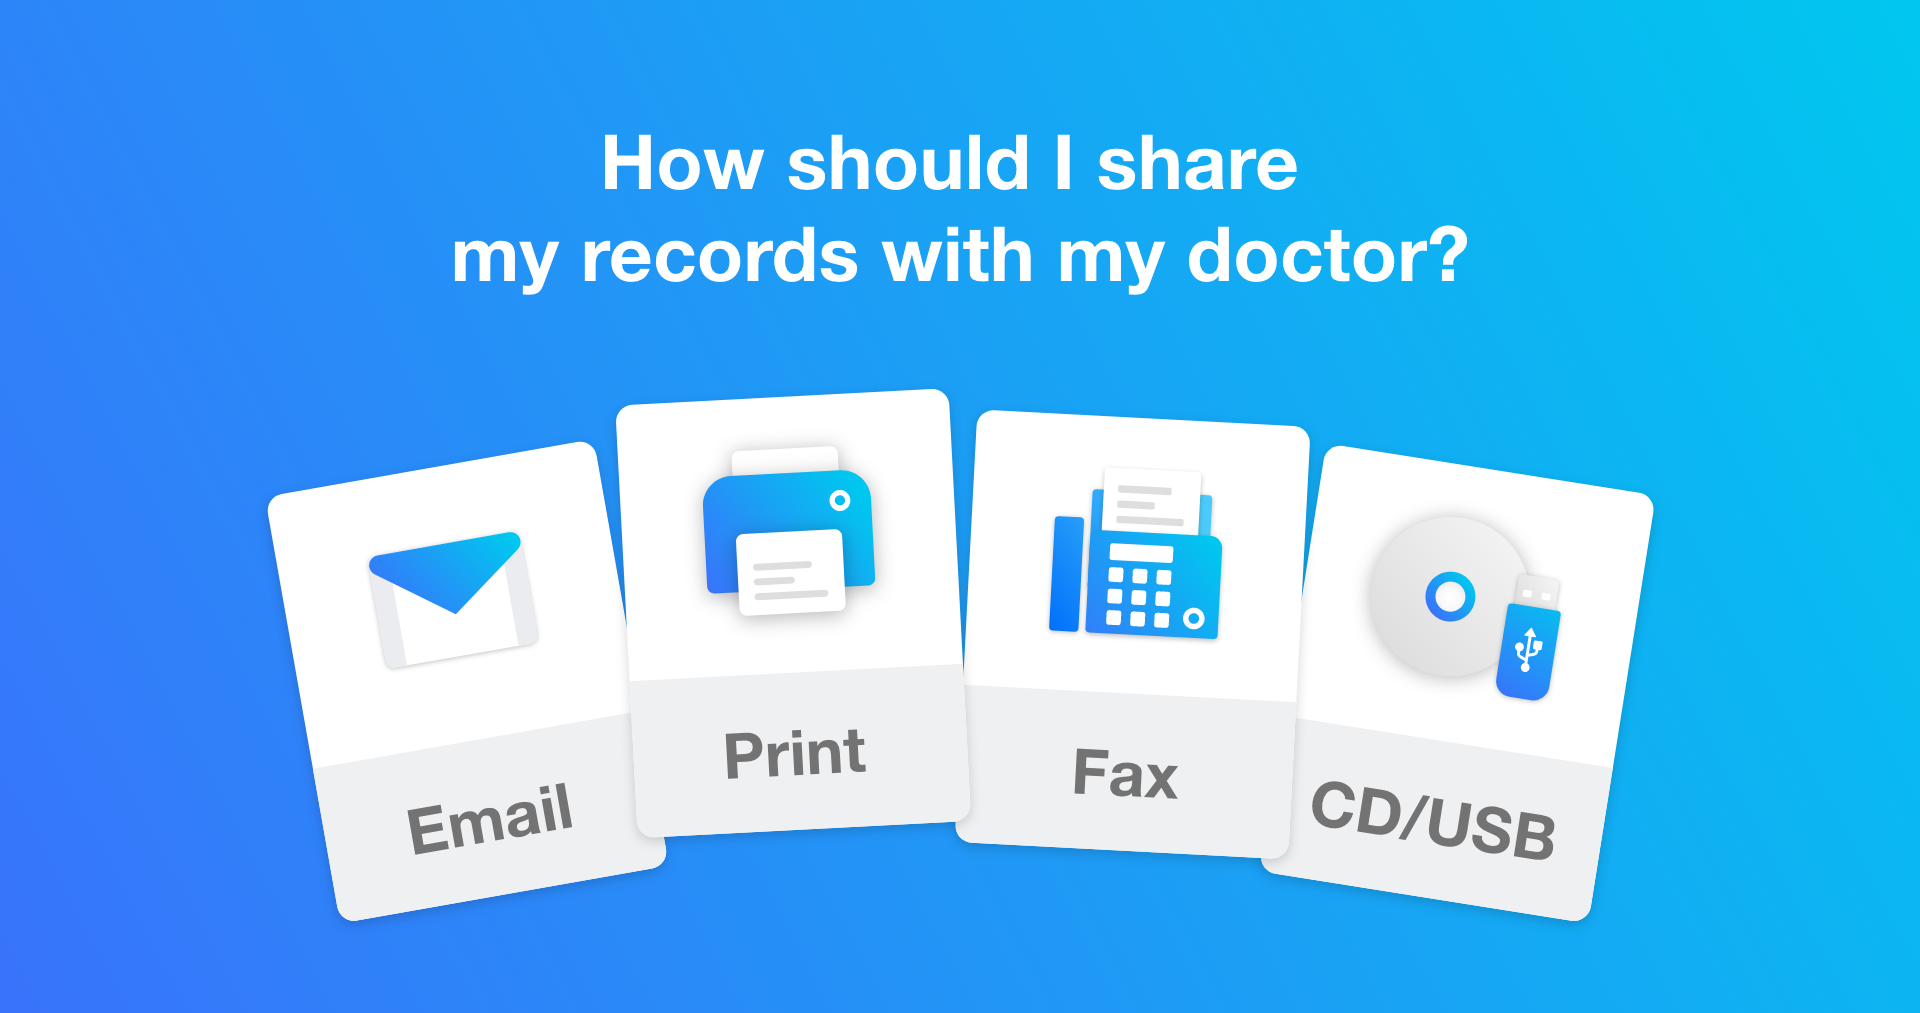 Deciding Which Sharing Option is Best for My Doctor